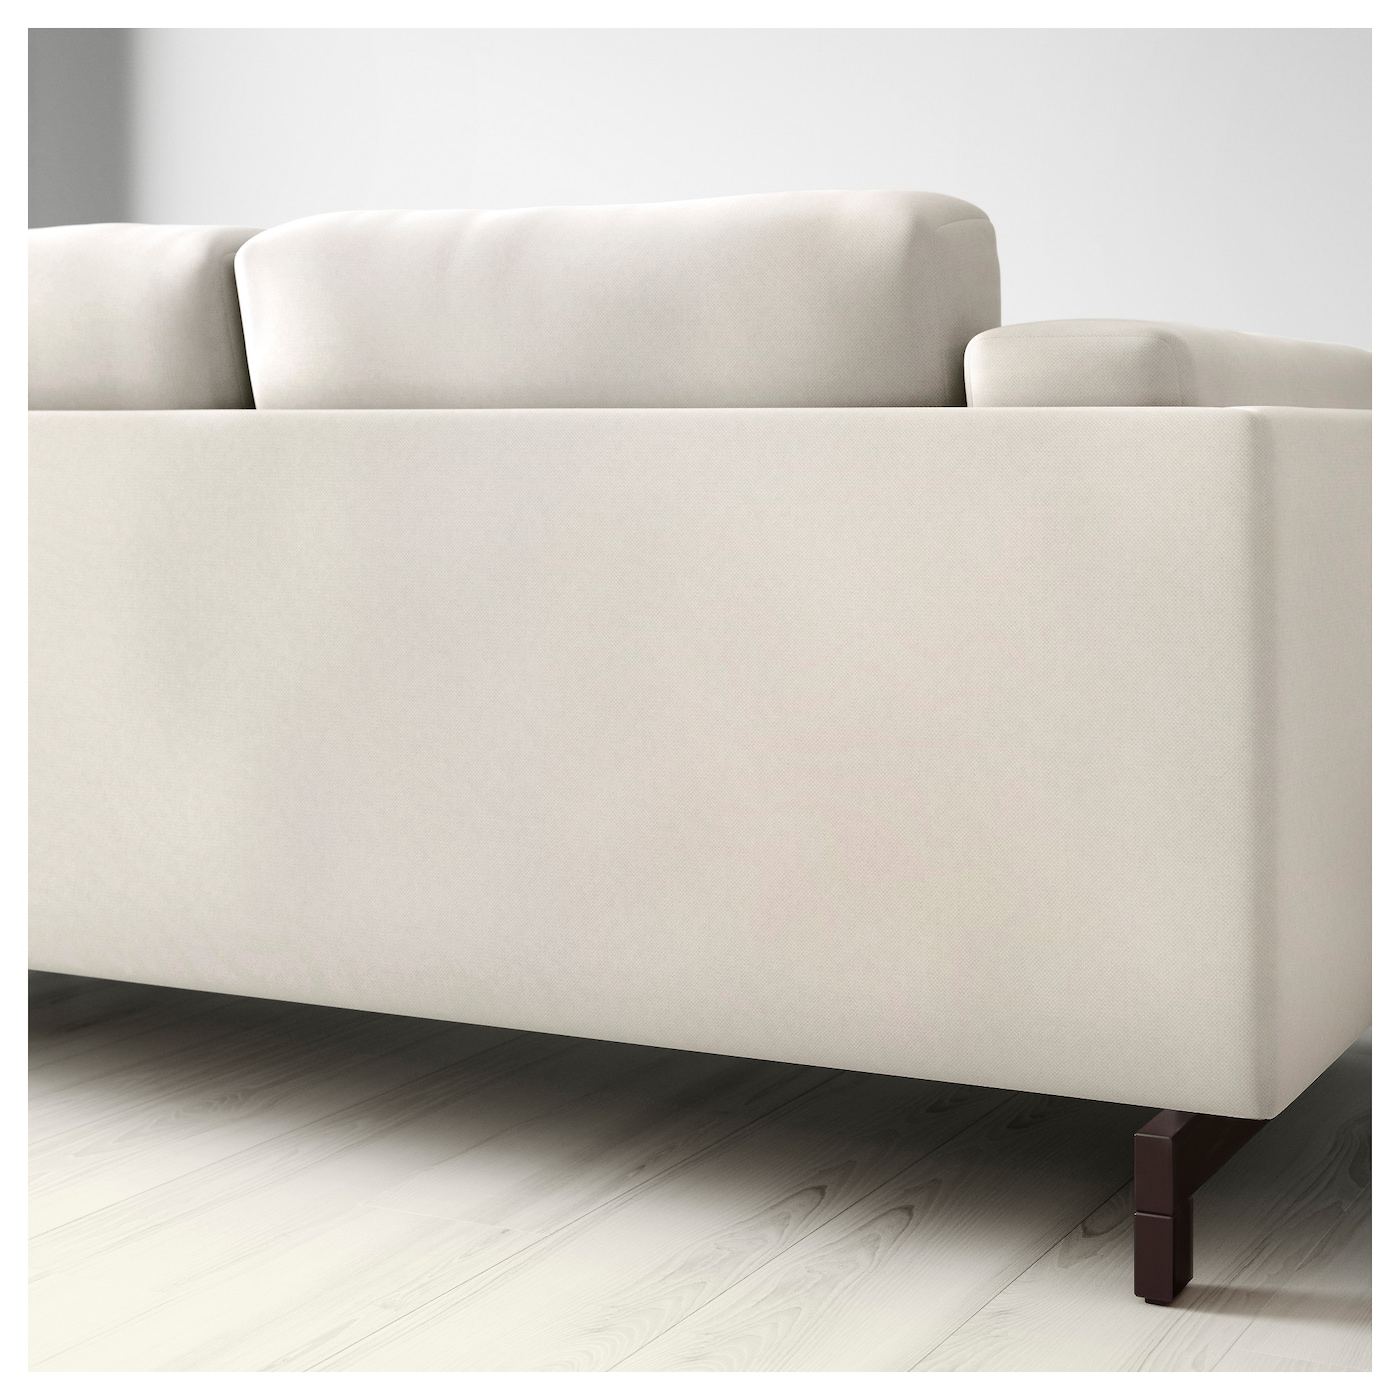 IKEA NOCKEBY two-seat sofa w chaise longue right